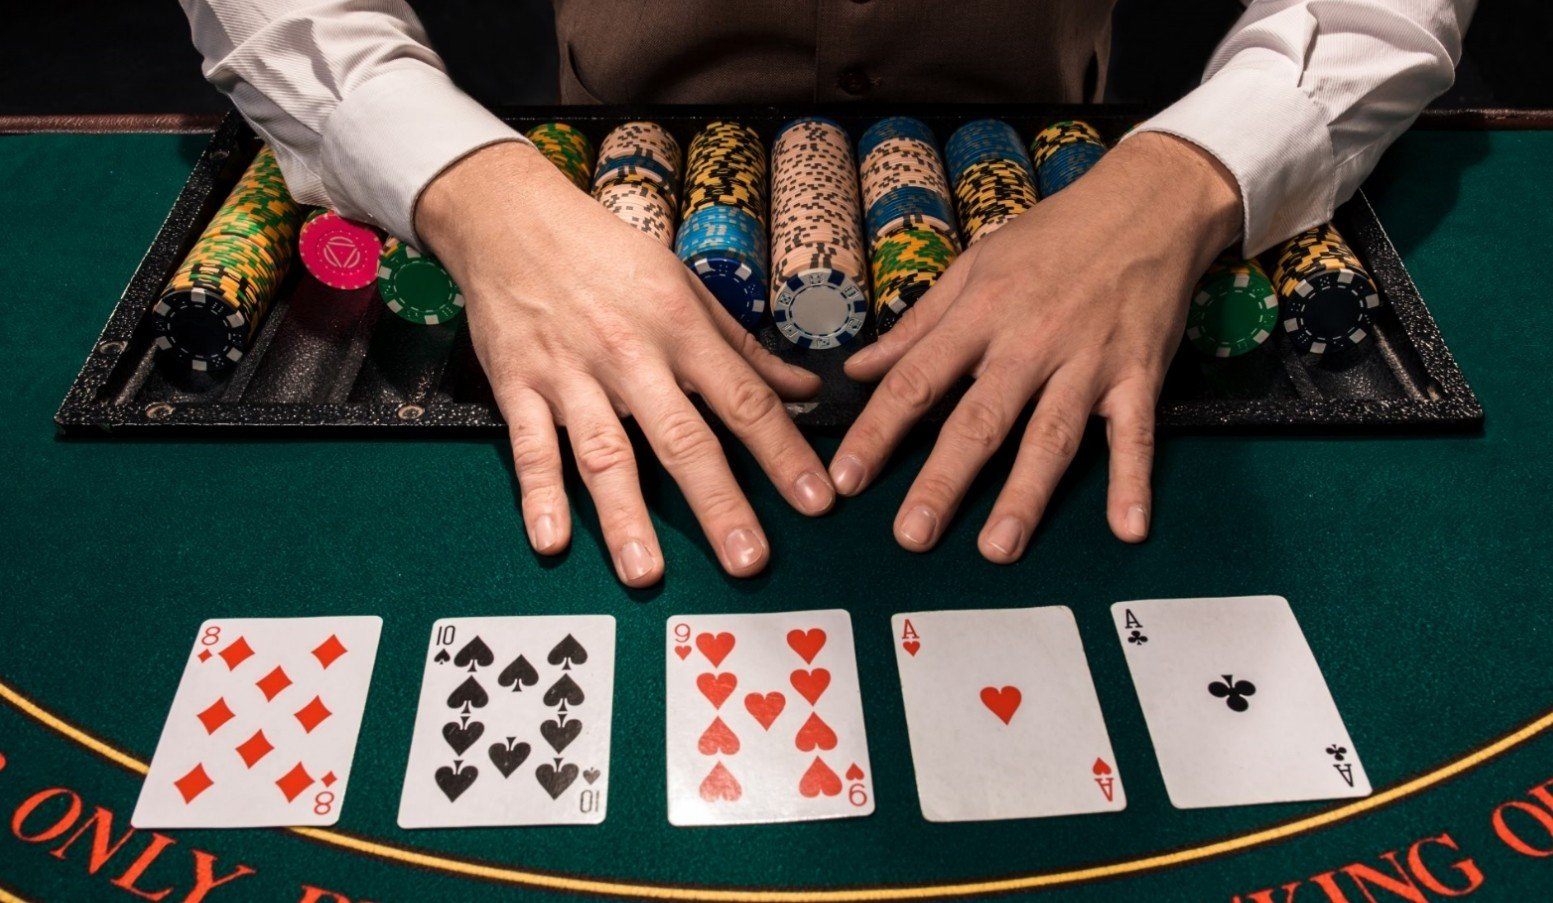 Play against weak poker players